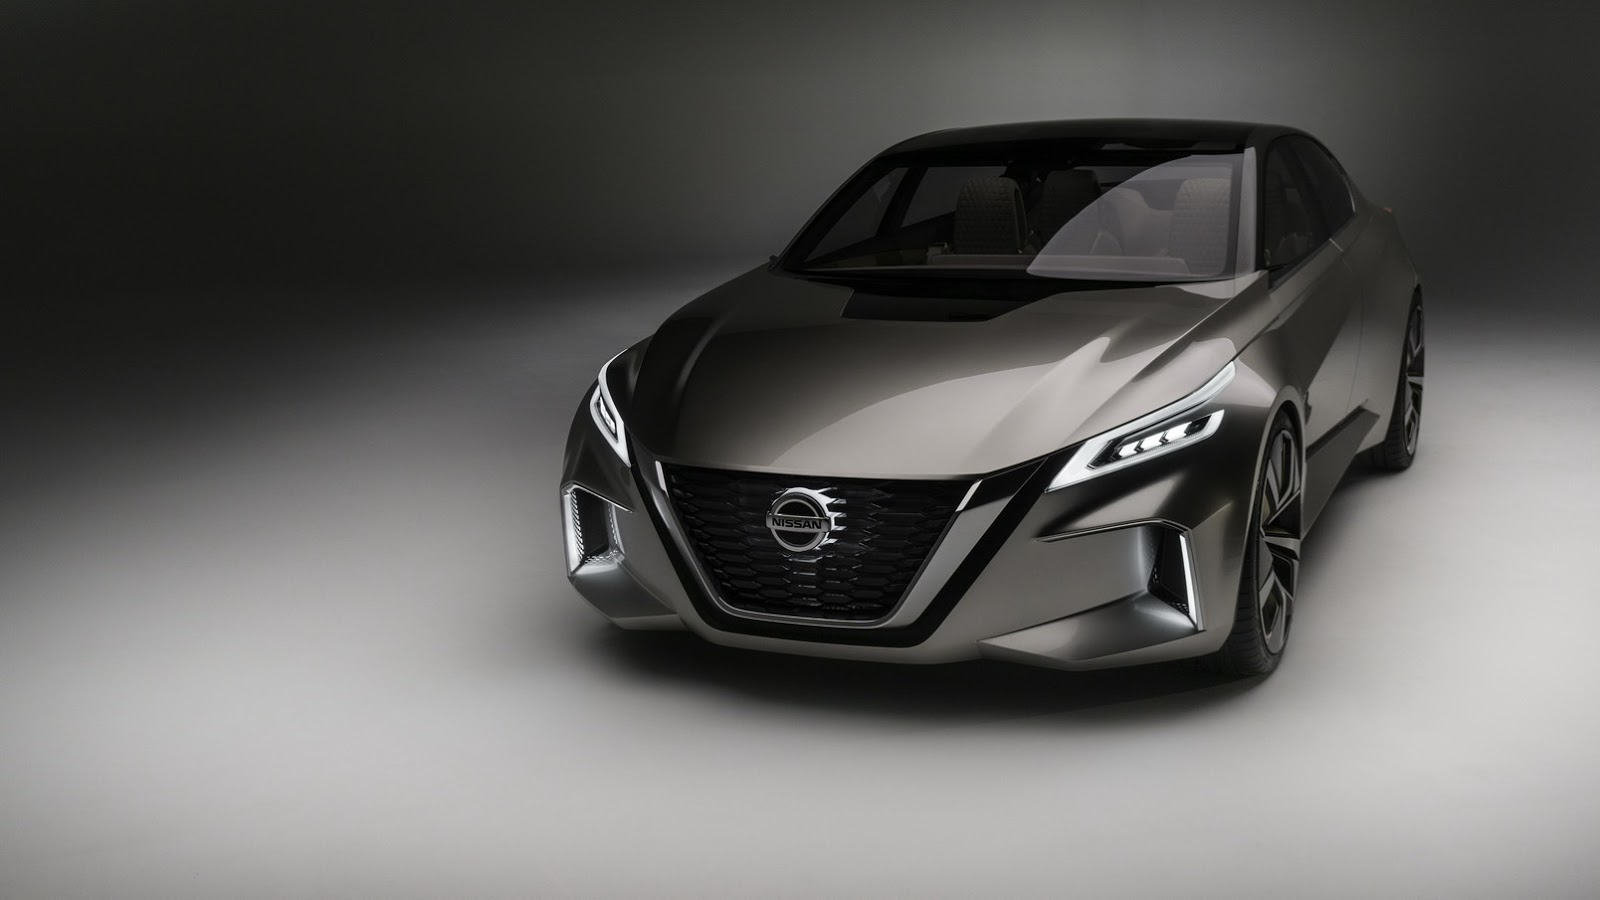 Nissan Vmotion 2.0 concept (23)